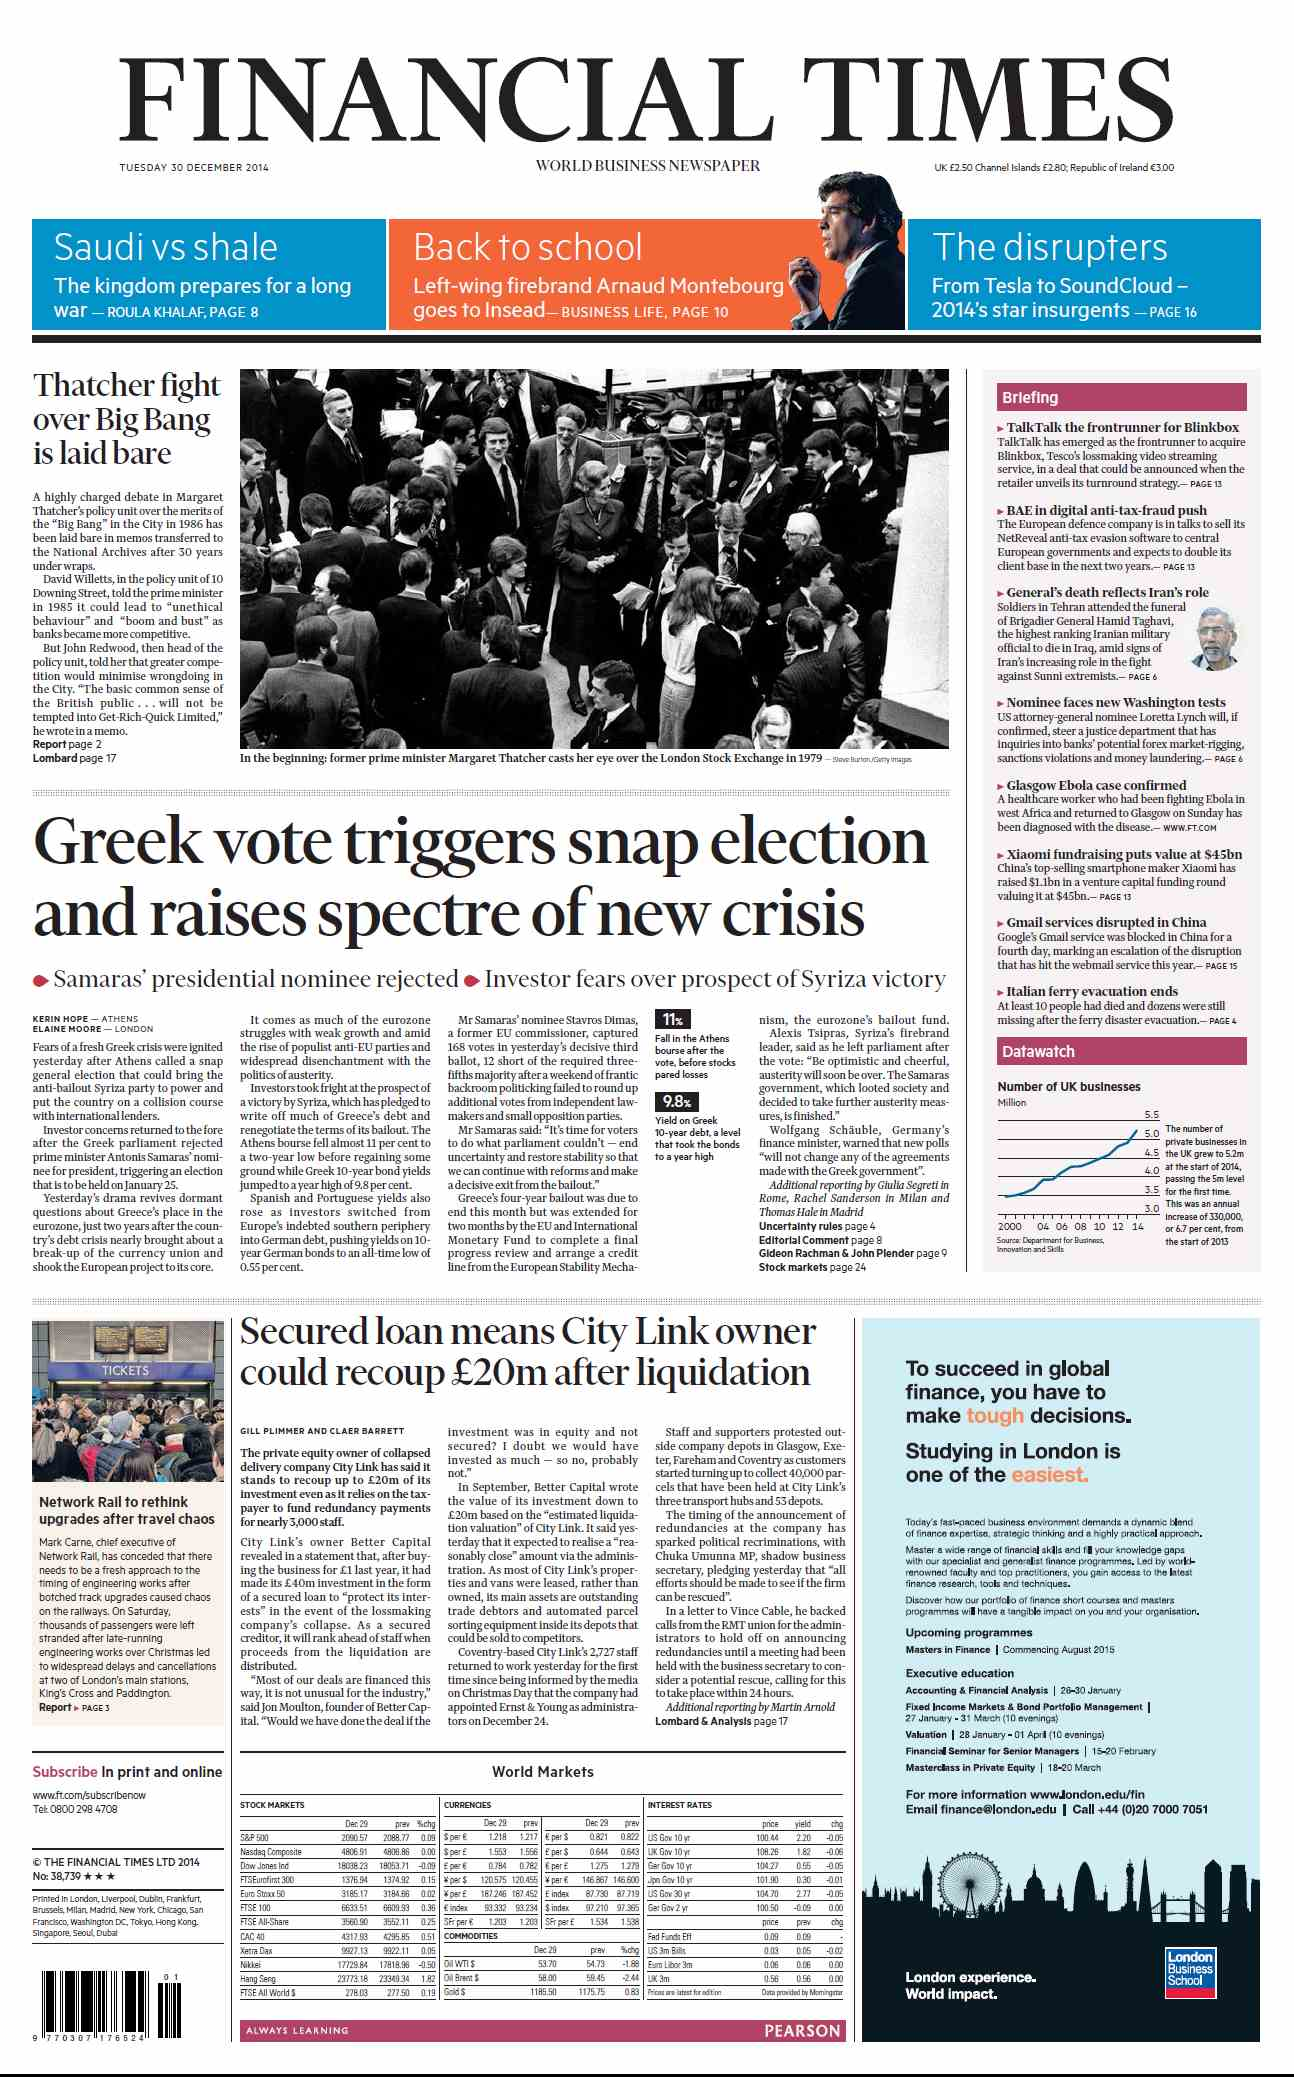 Financial Times  December 30, 2014 free download